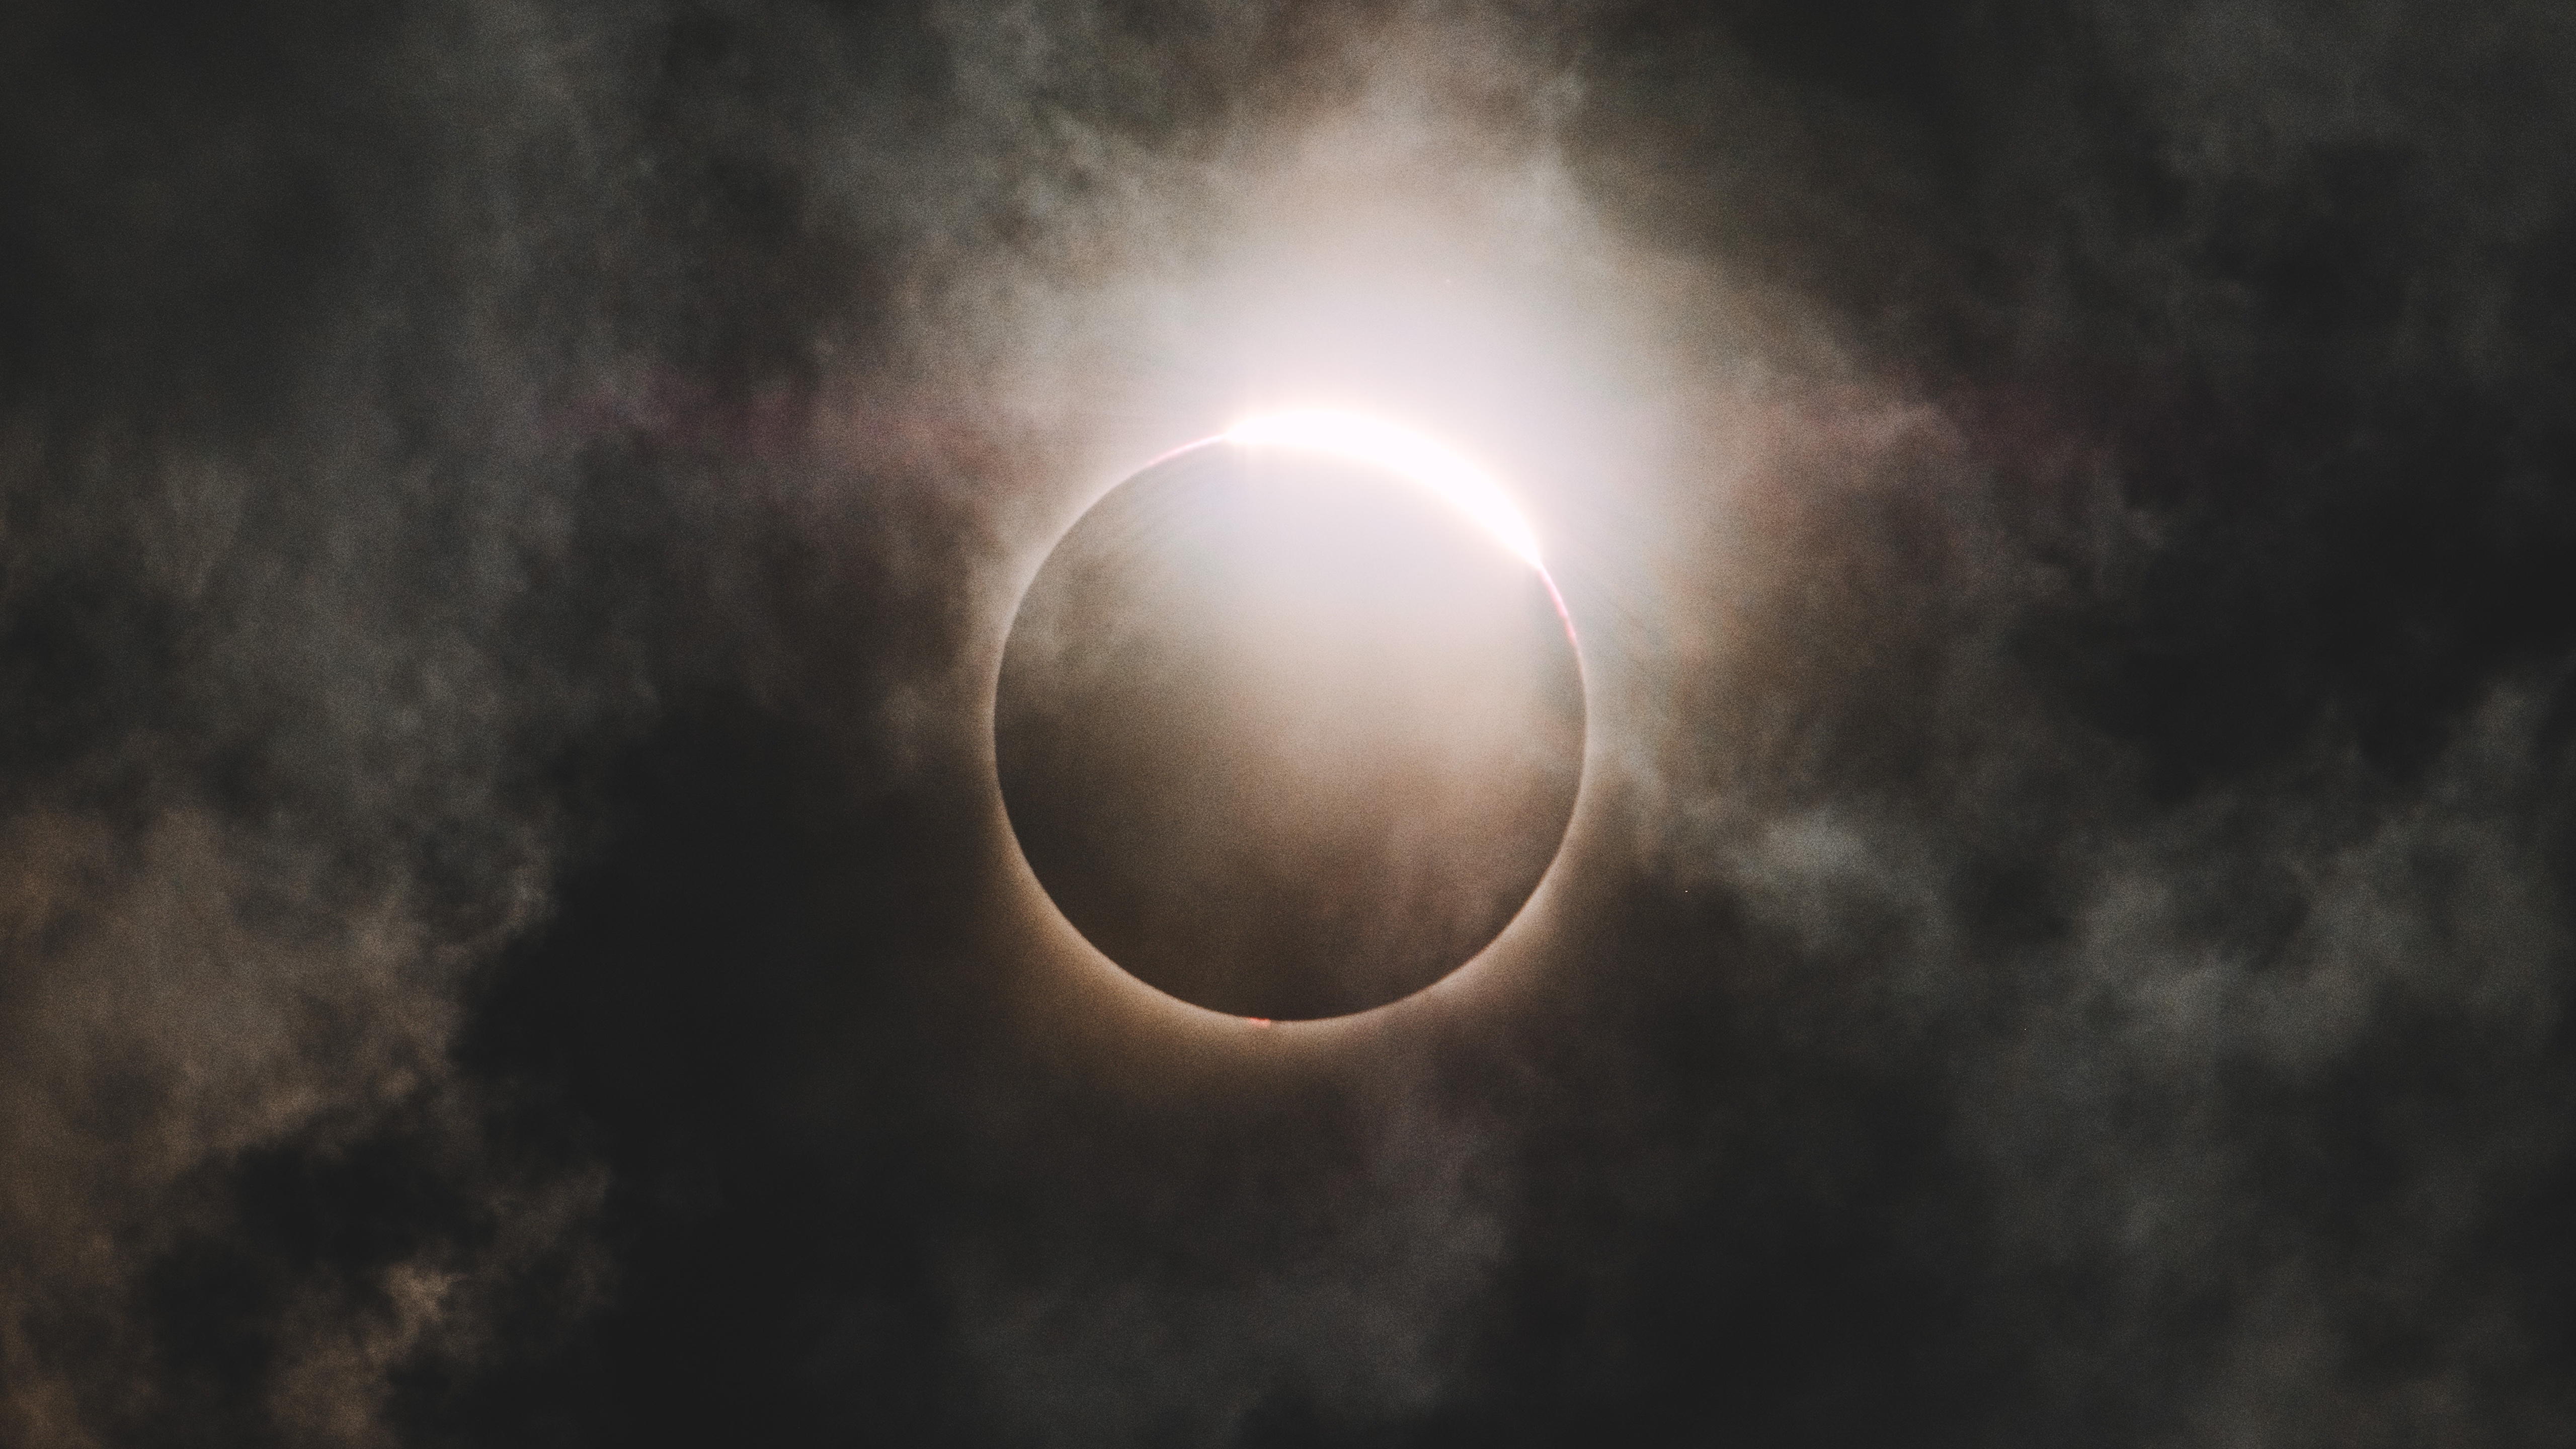 Wallpapers Weekends: Solar Eclipse 2017 for Mac, iPhone, iPad, and